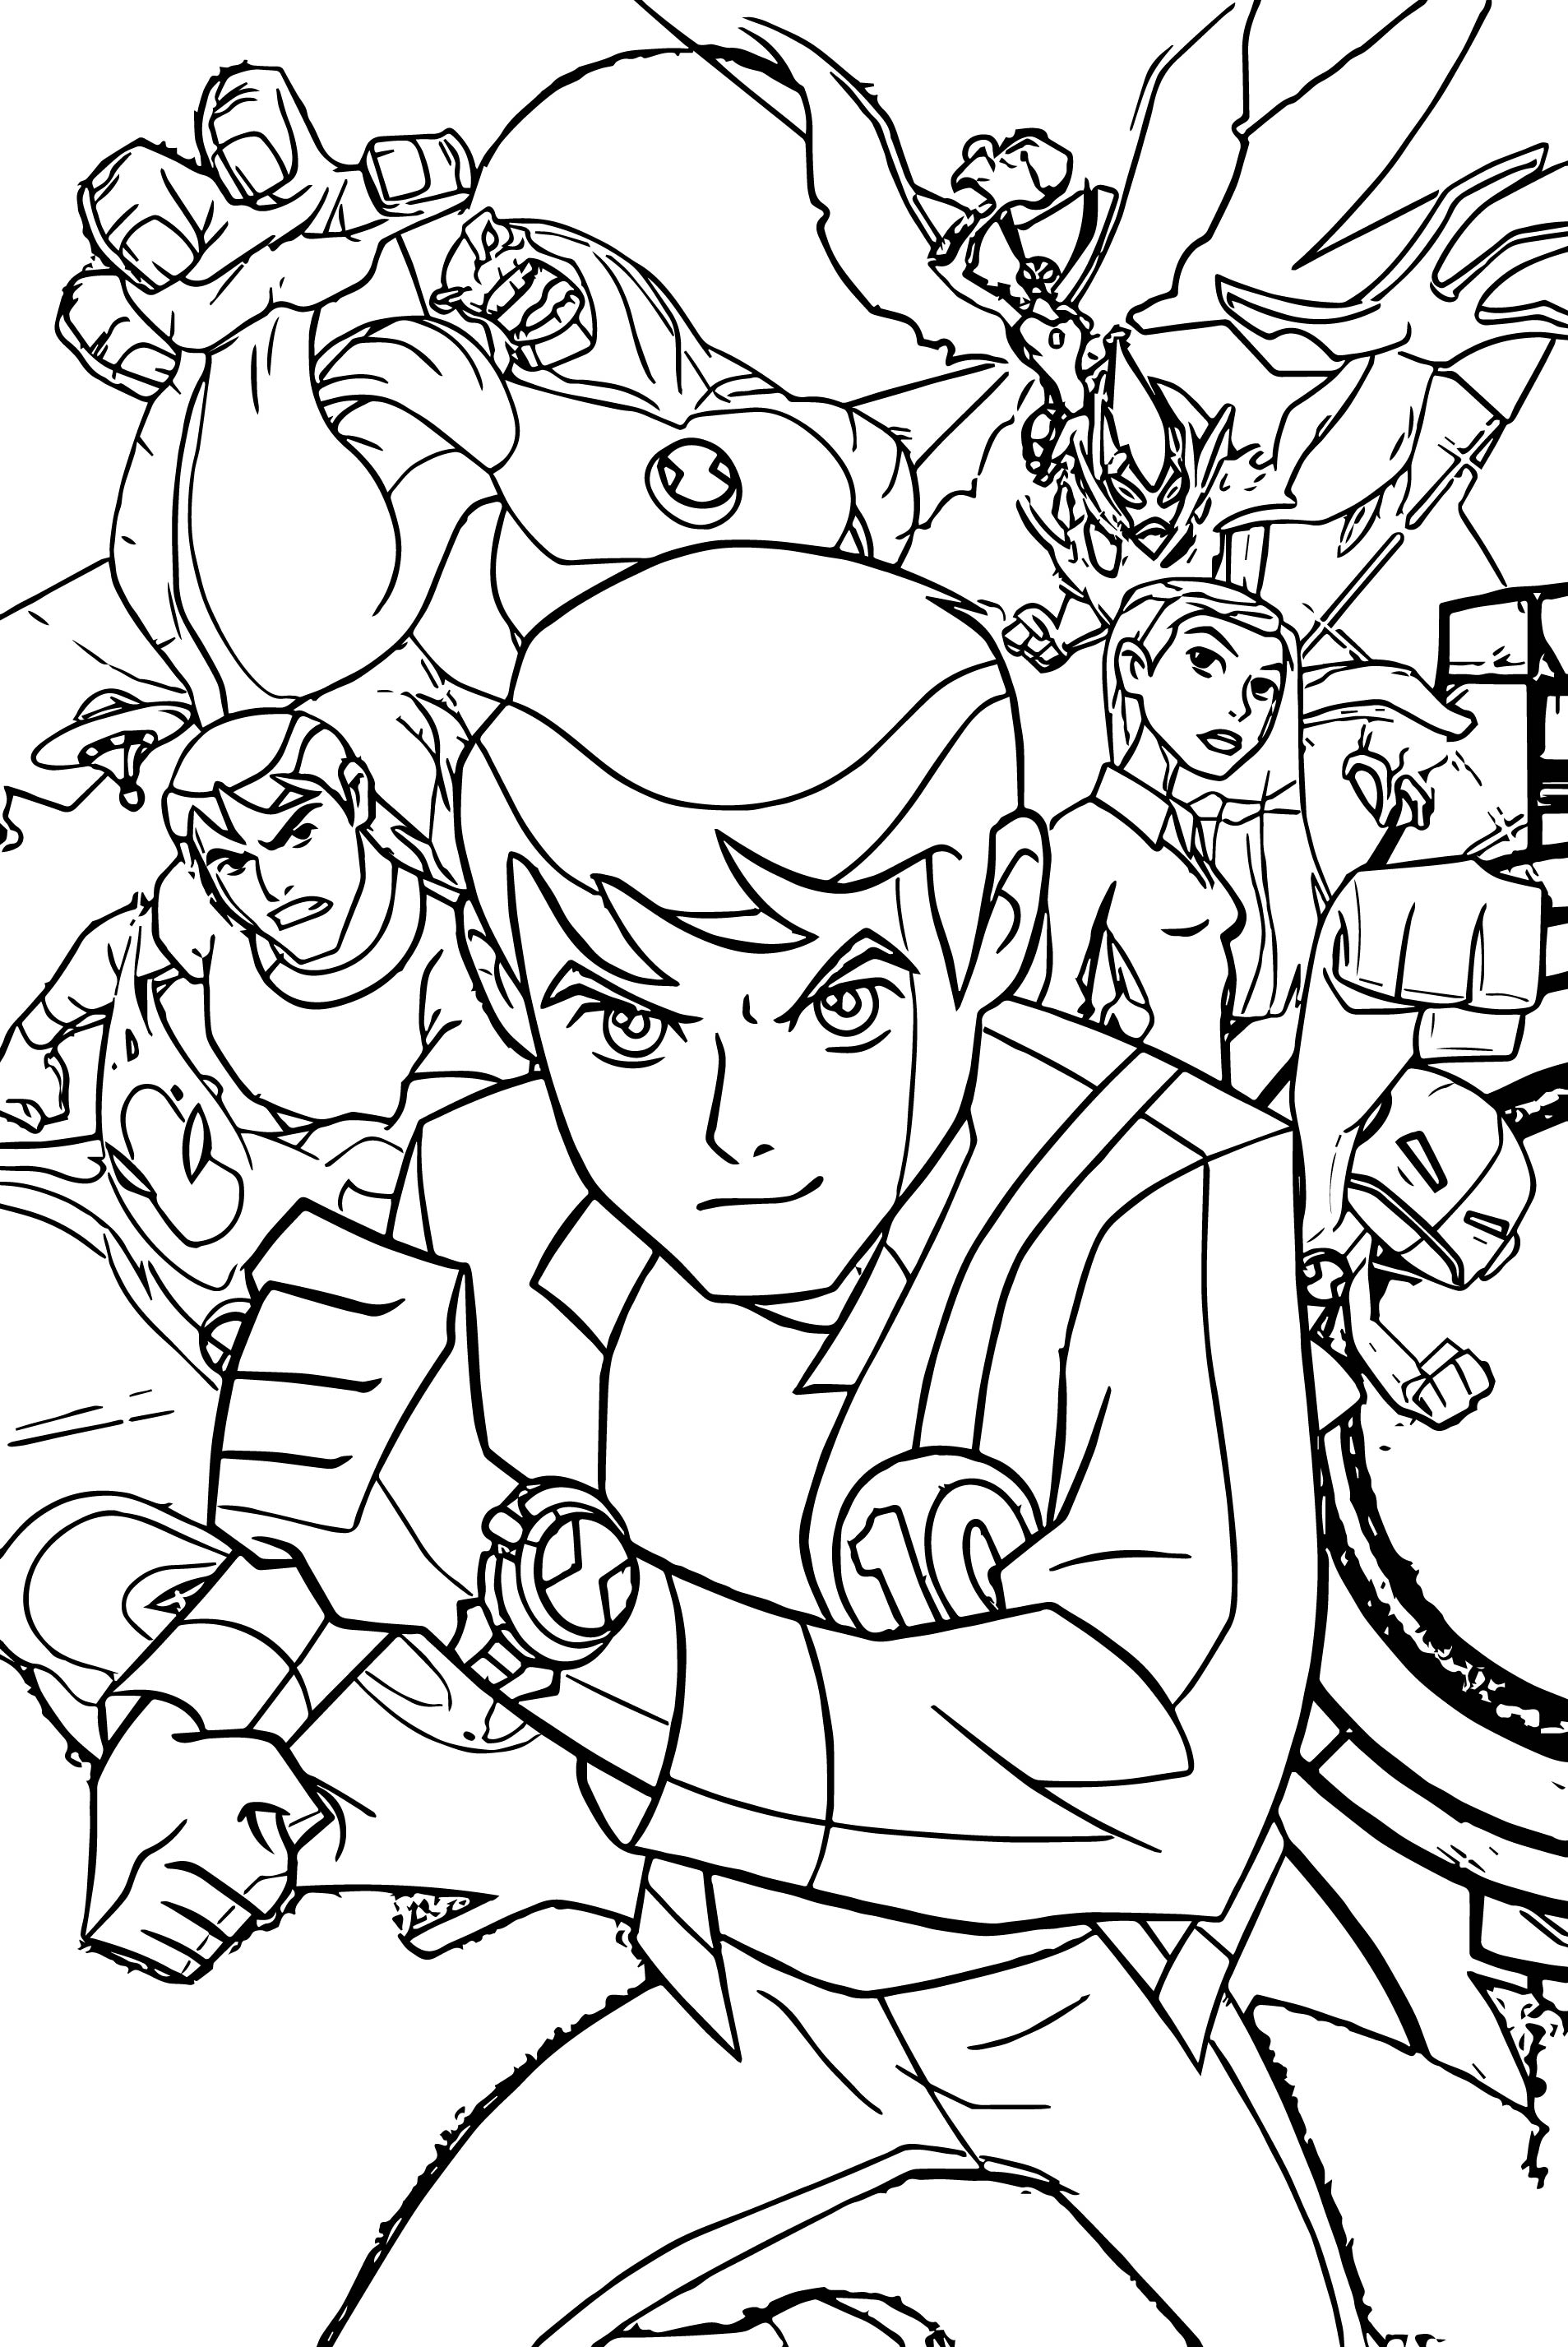 Free Coloring Pages Download Ben 10 Interesting Games Of